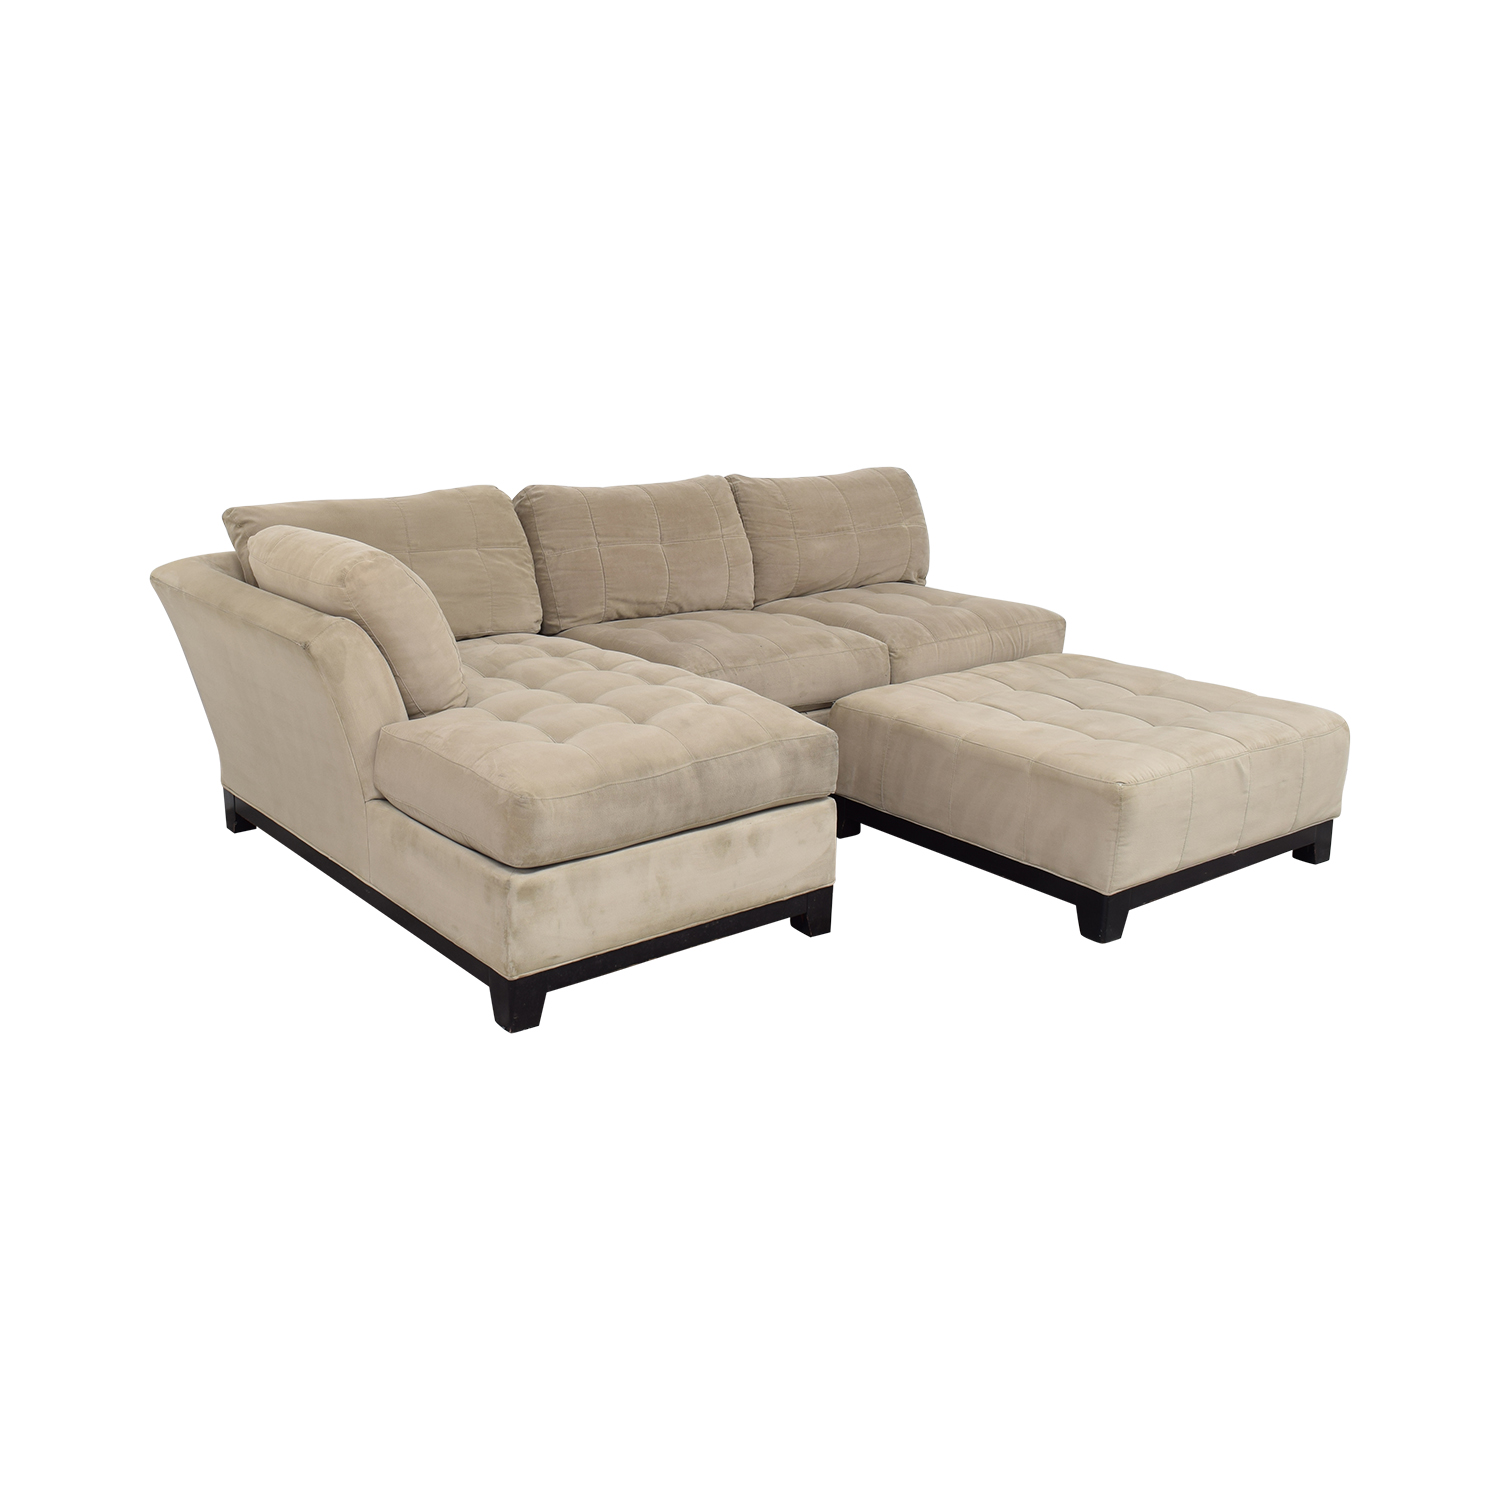 Cindy Crawford Home Cindy Crawford Home Microfiber Sectional with Ottoman used